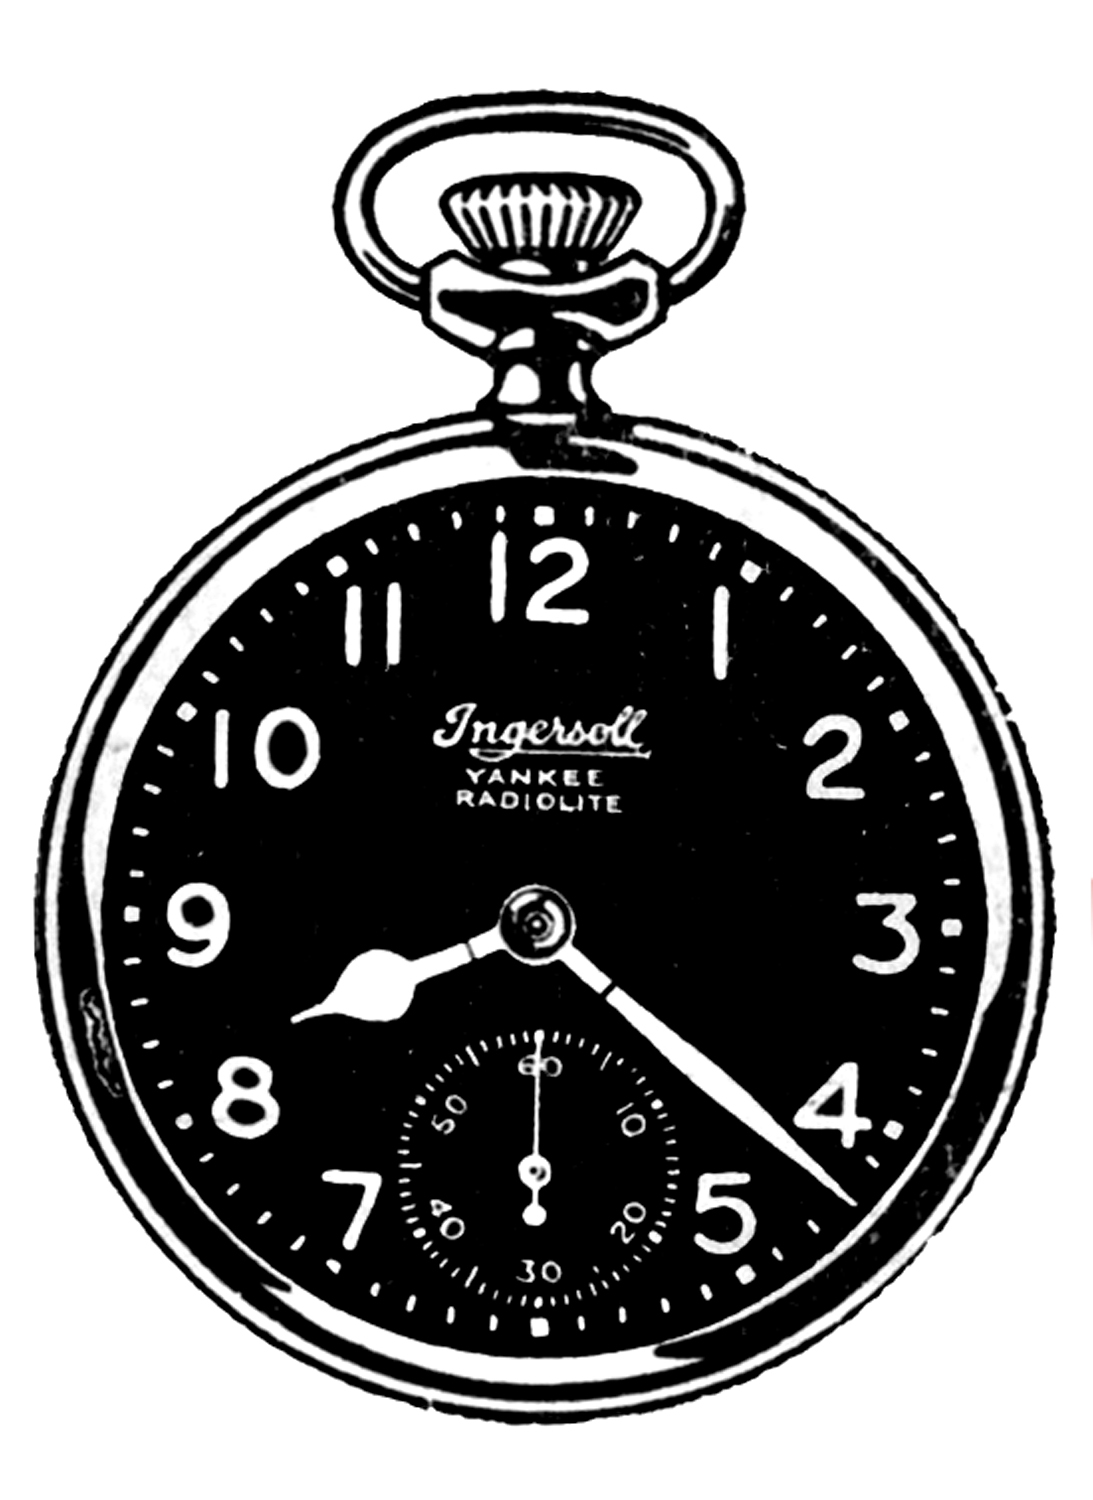 clipart of watches and clocks - photo #41